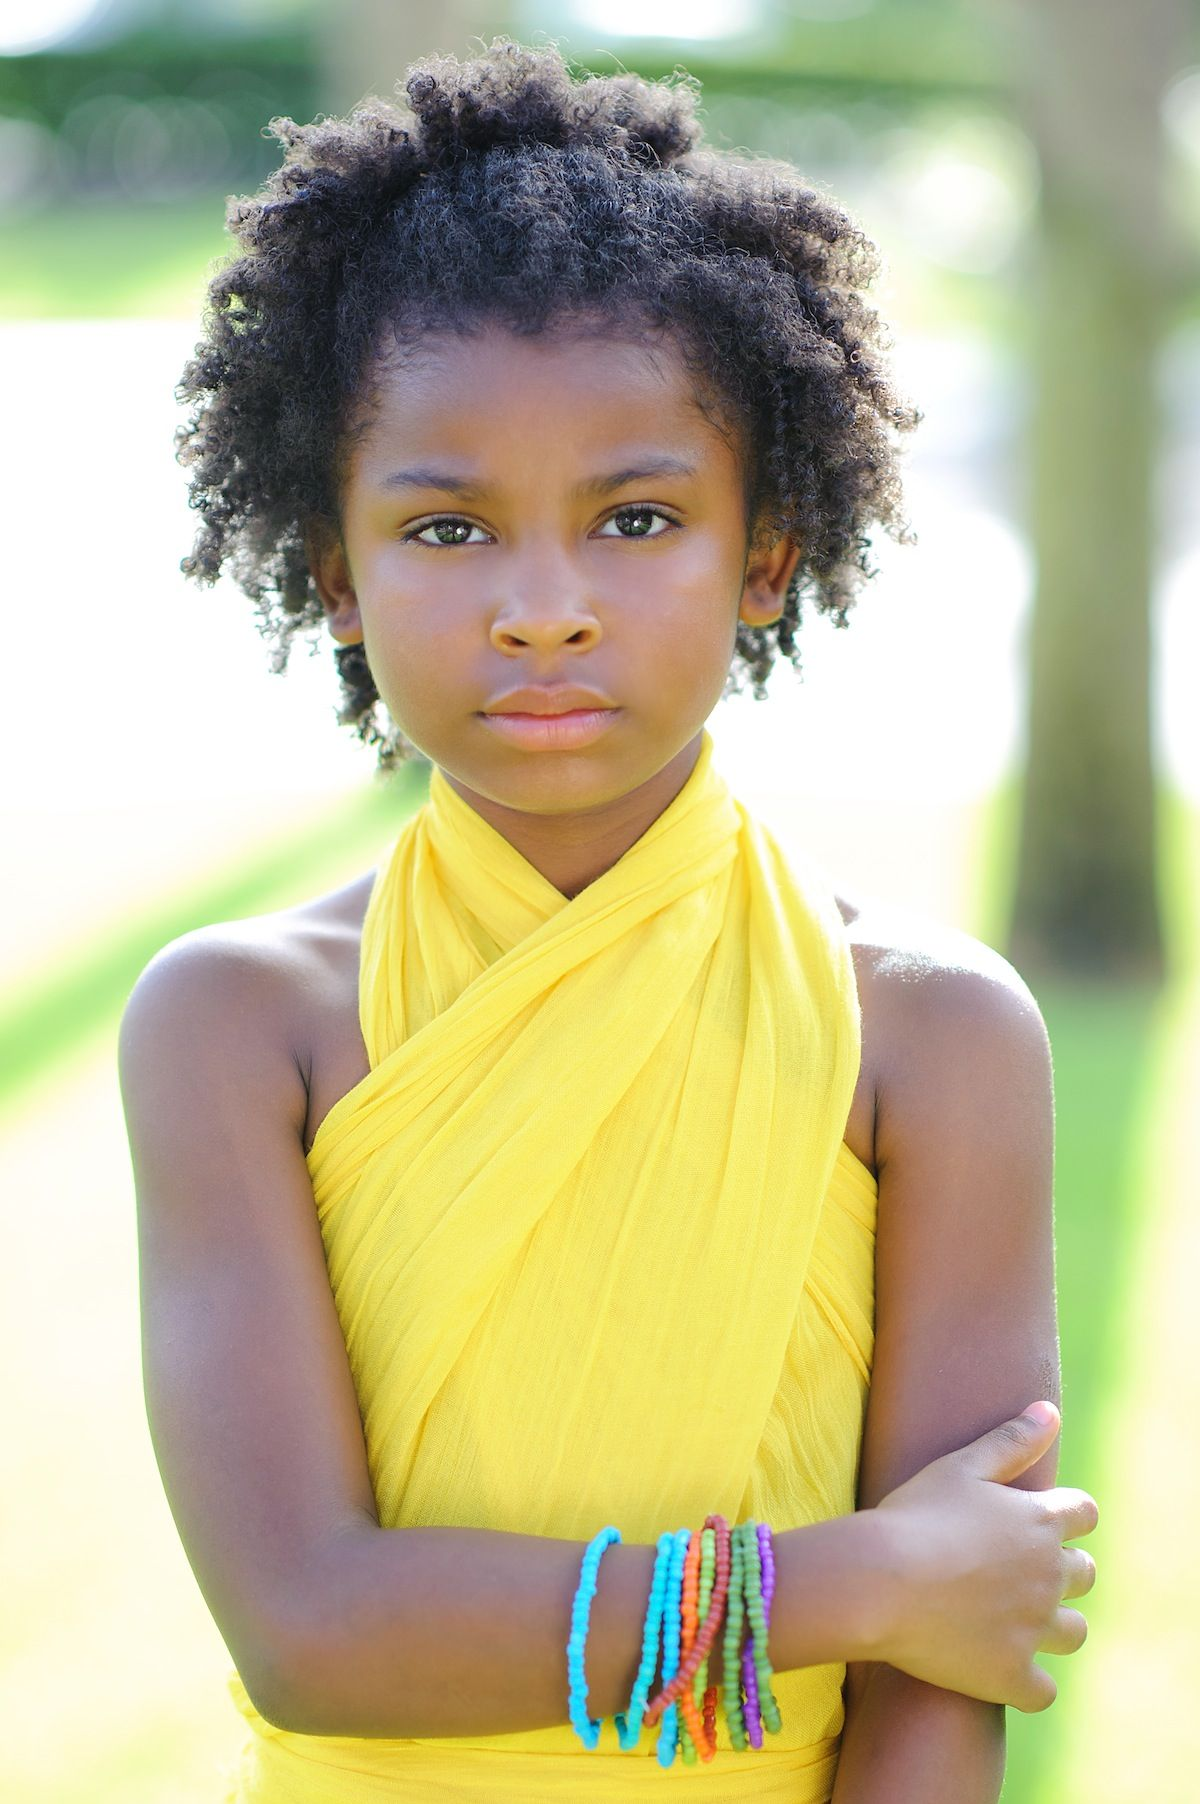 Incredible 1000 Images About Cute Brown Kids On Pinterest Baby Girls Pies Short Hairstyles For Black Women Fulllsitofus